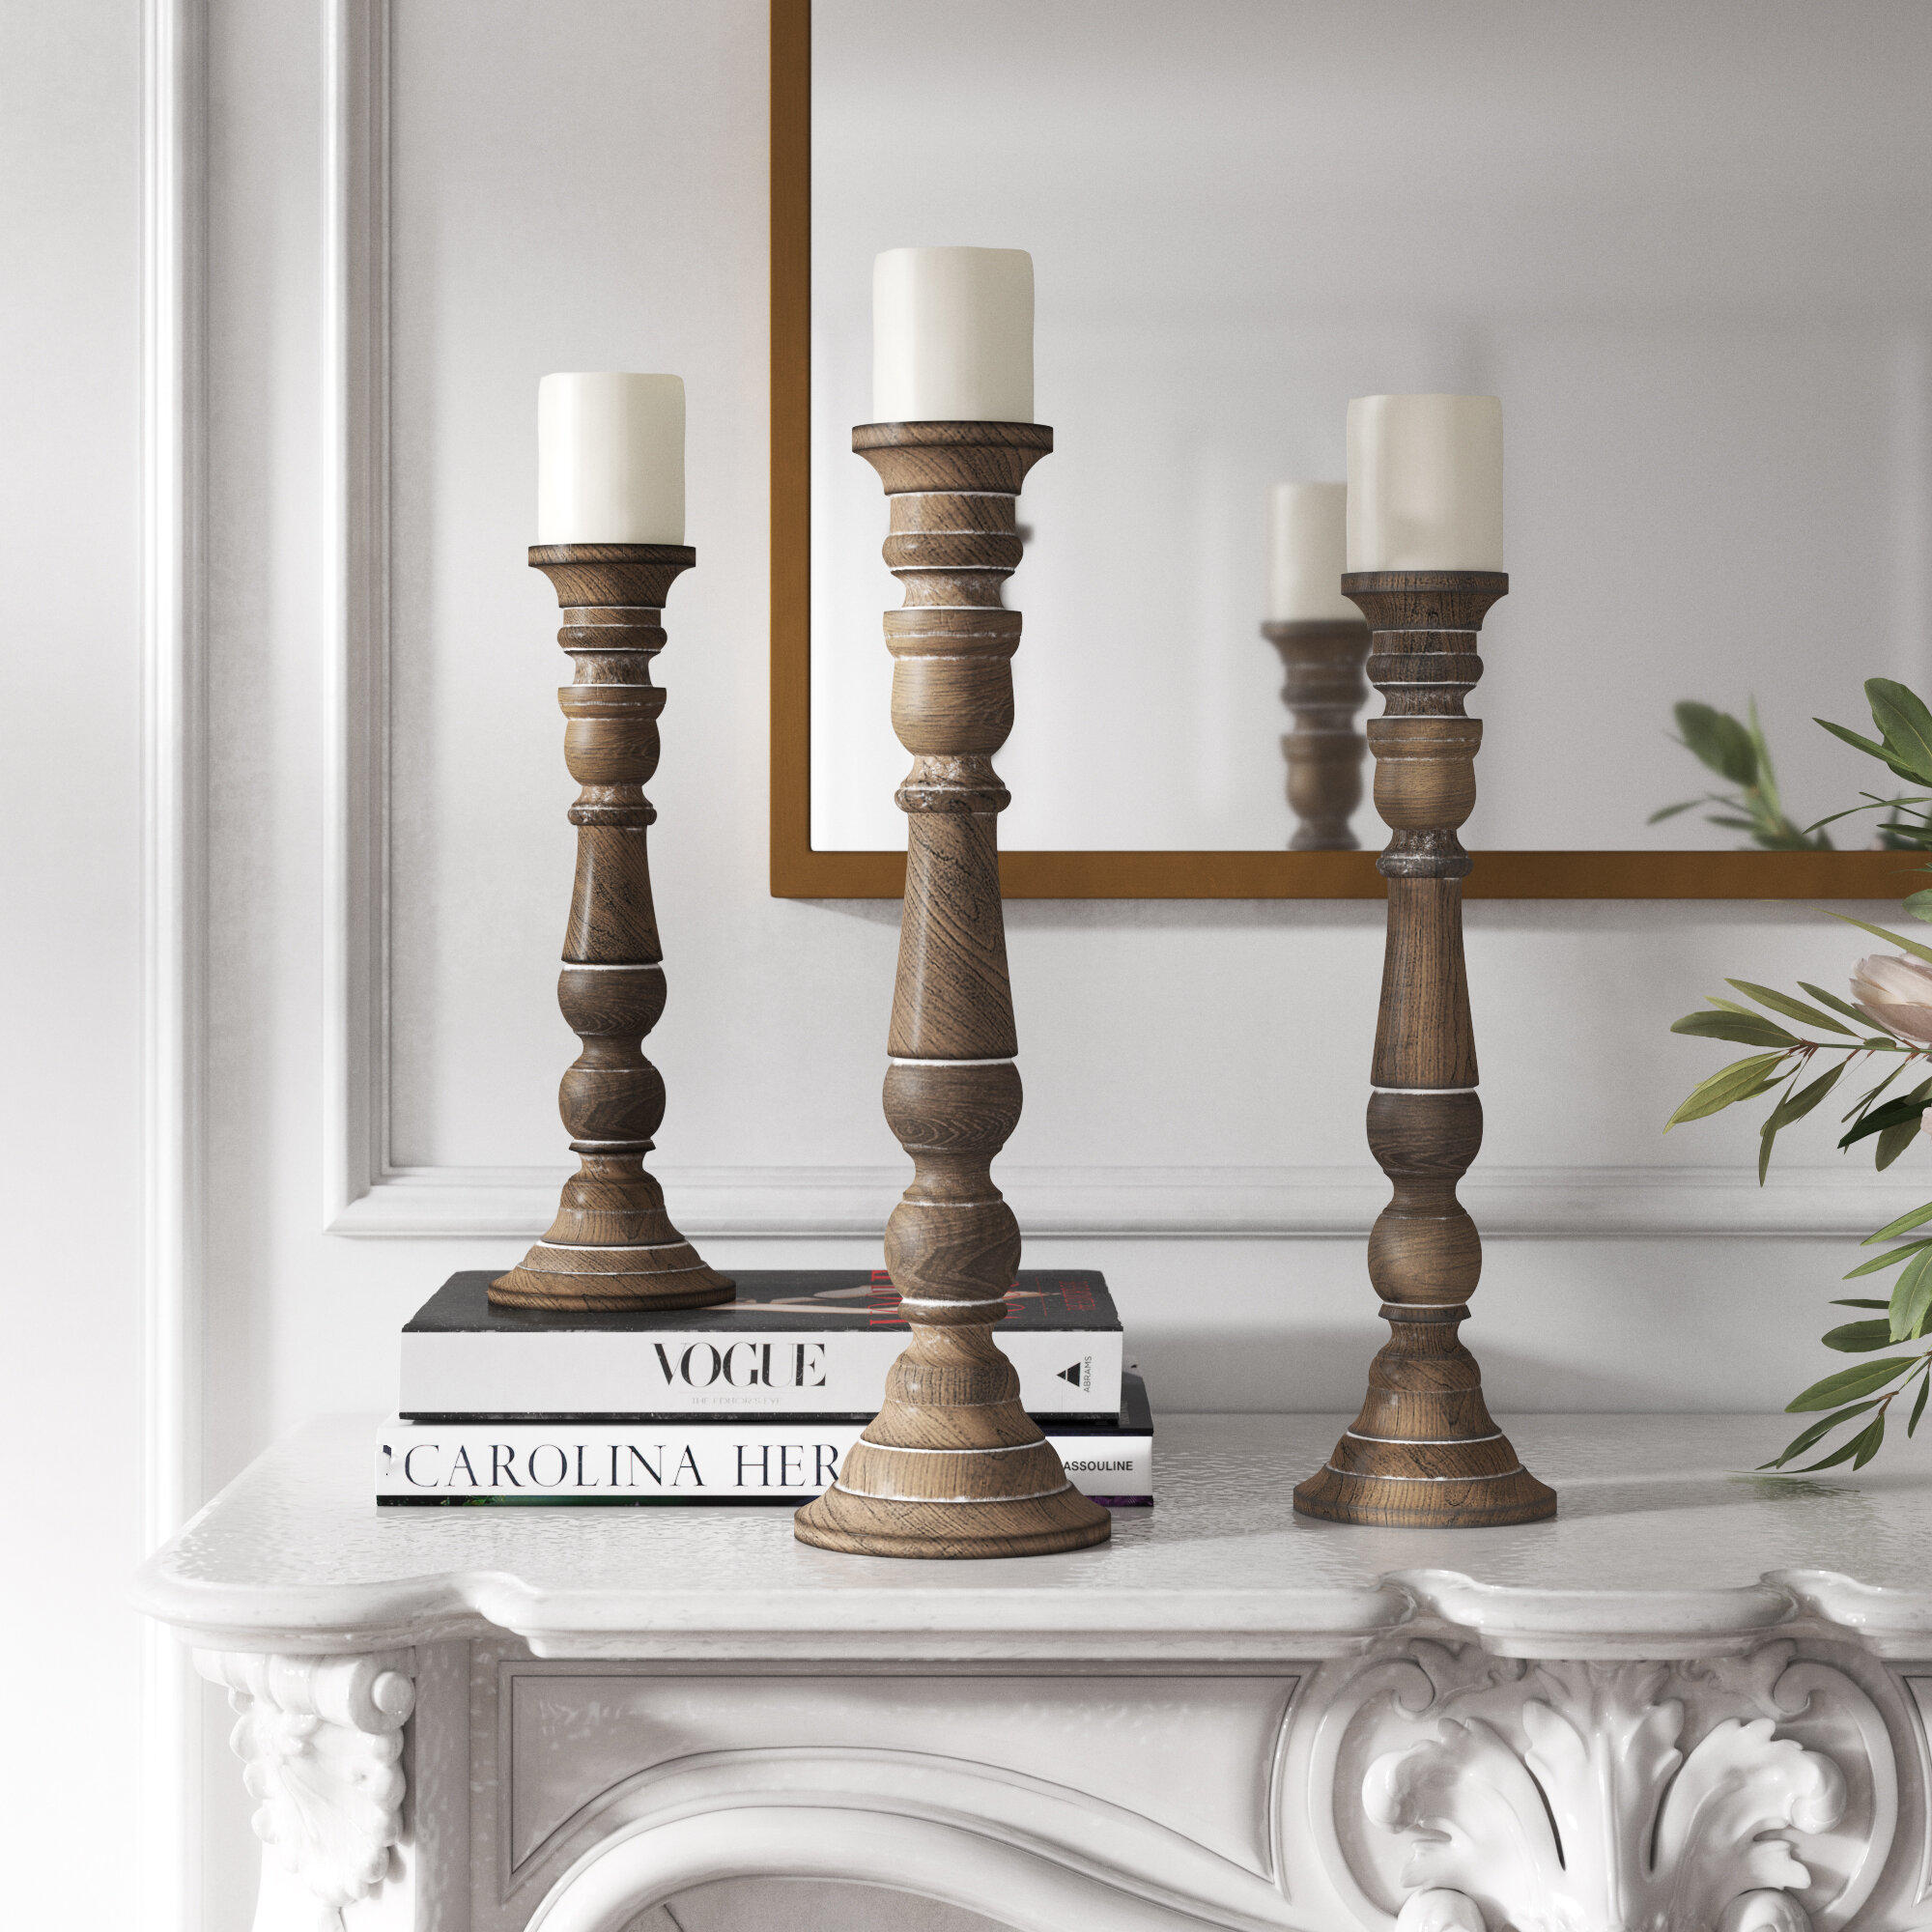 Kelly Clarkson Home 3 Piece Wood Tabletop Candlestick Set Reviews Wayfair